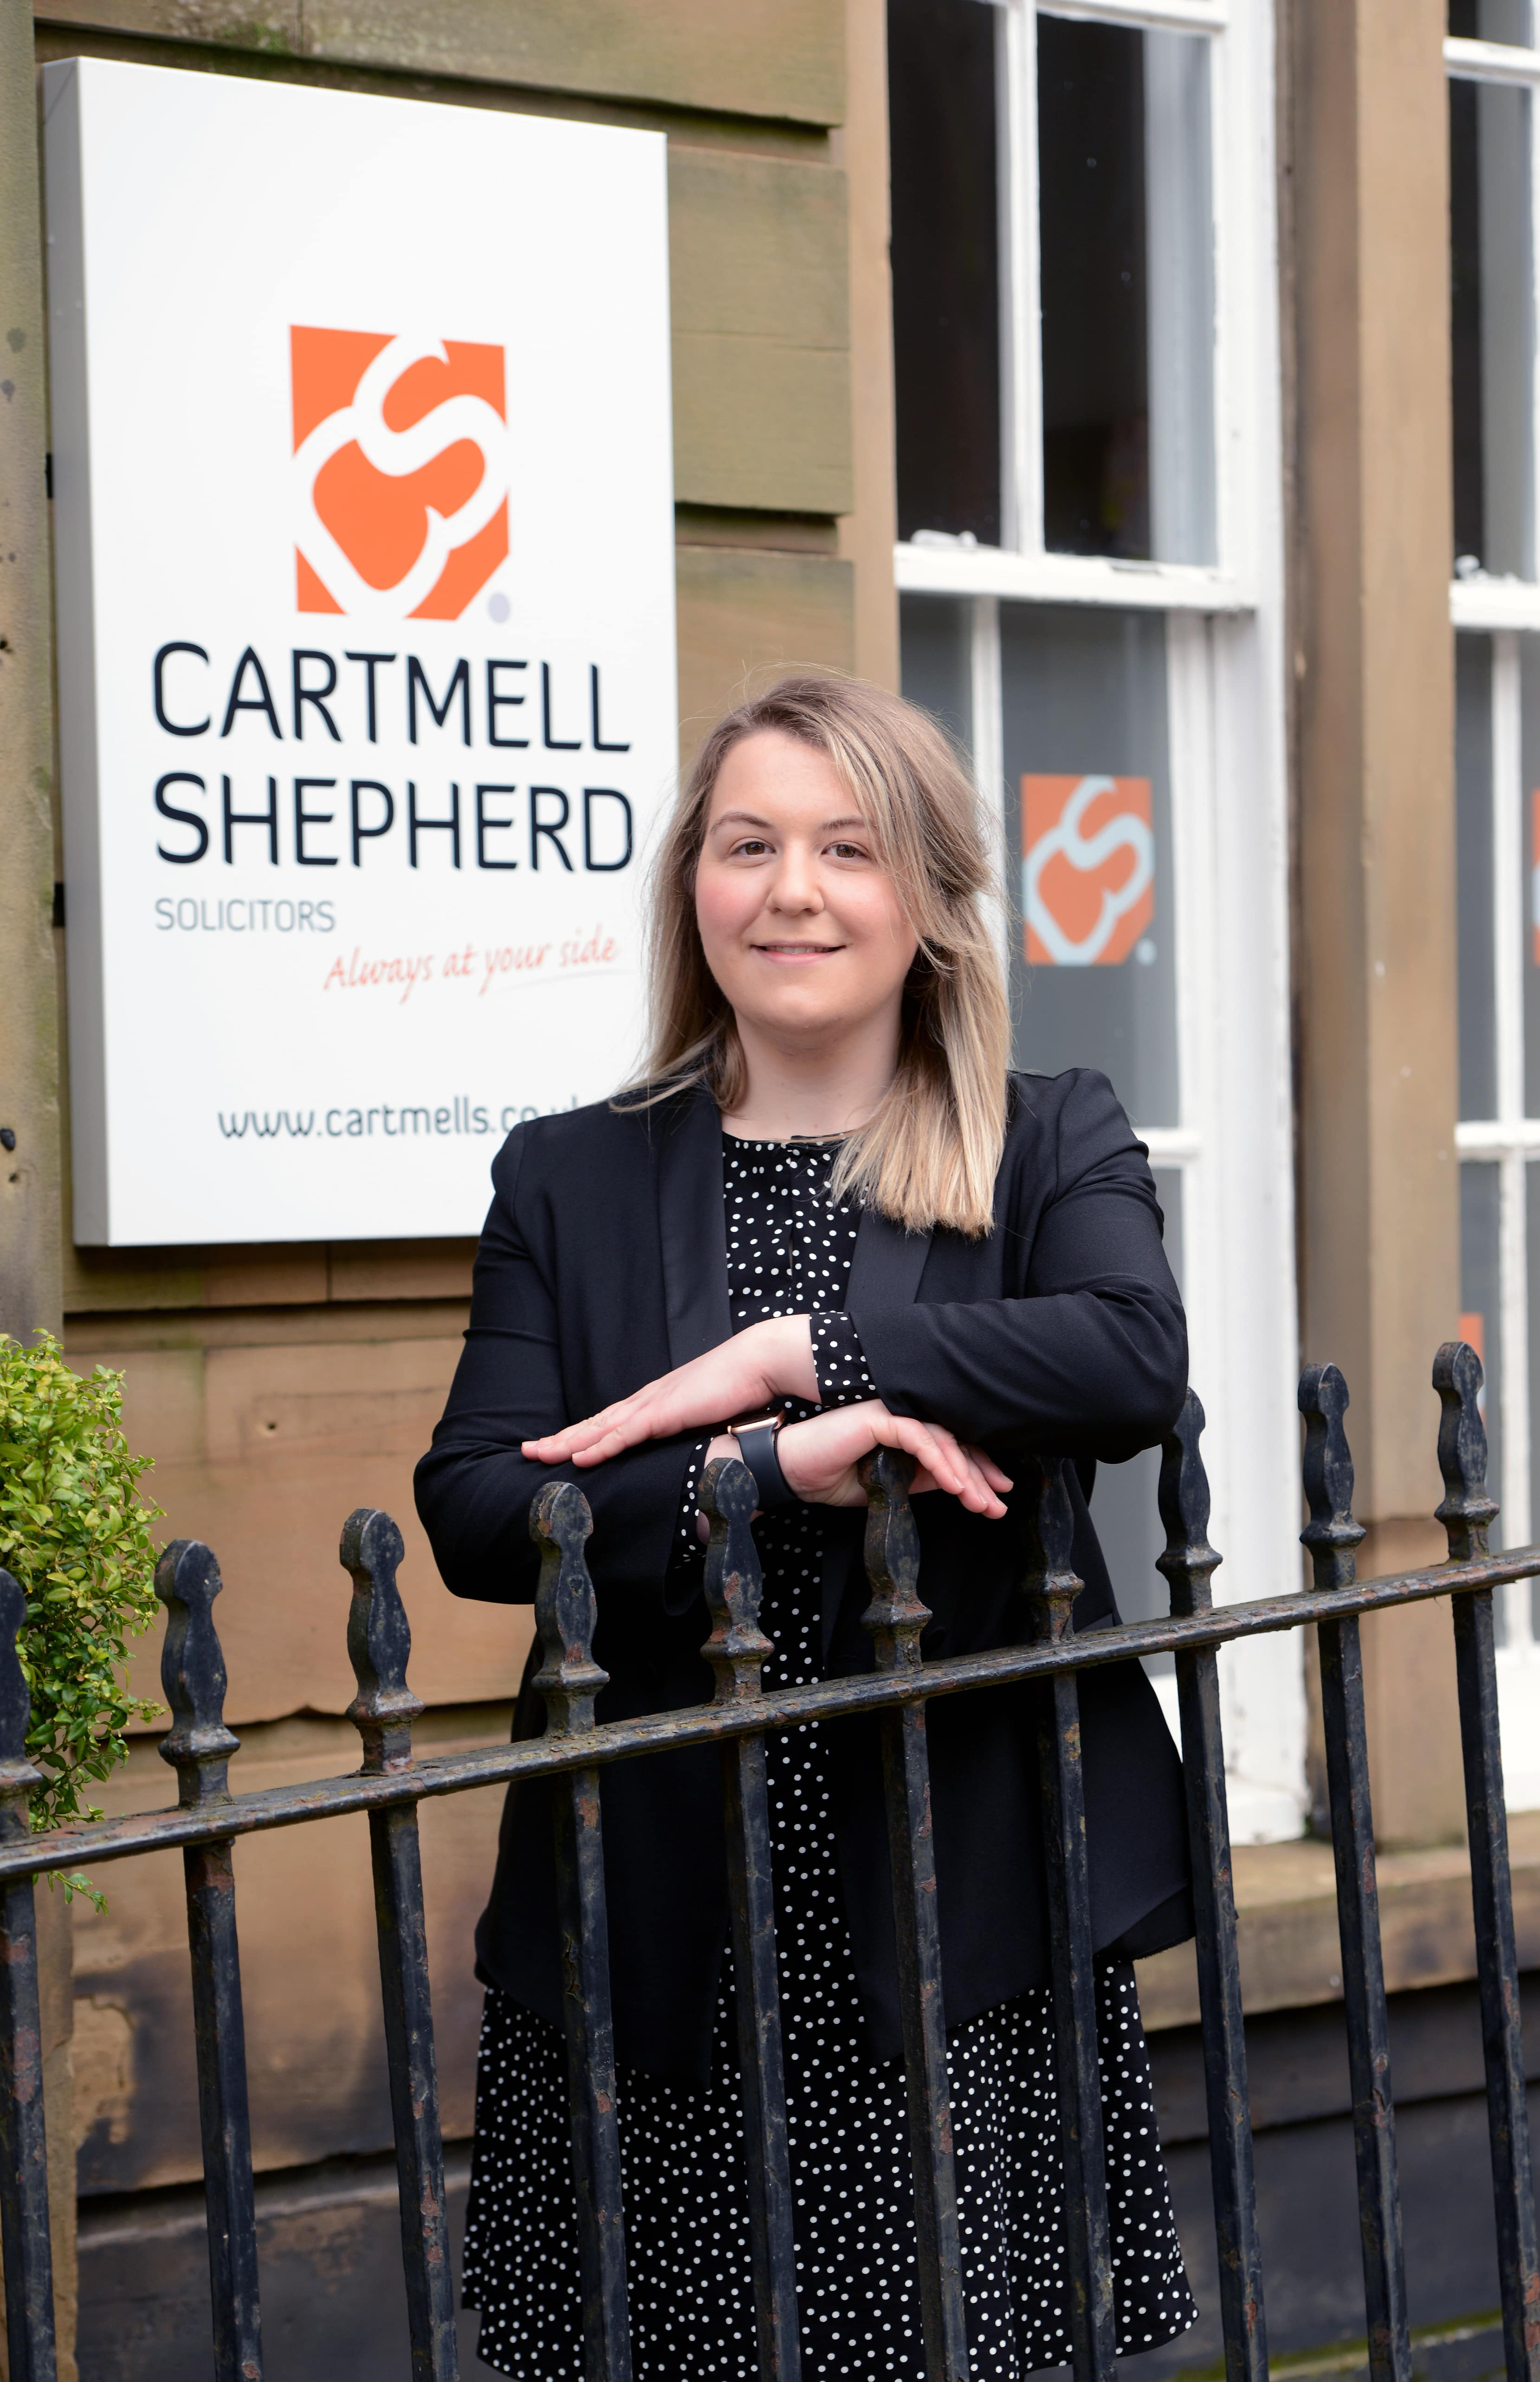 New recruits join legal firm